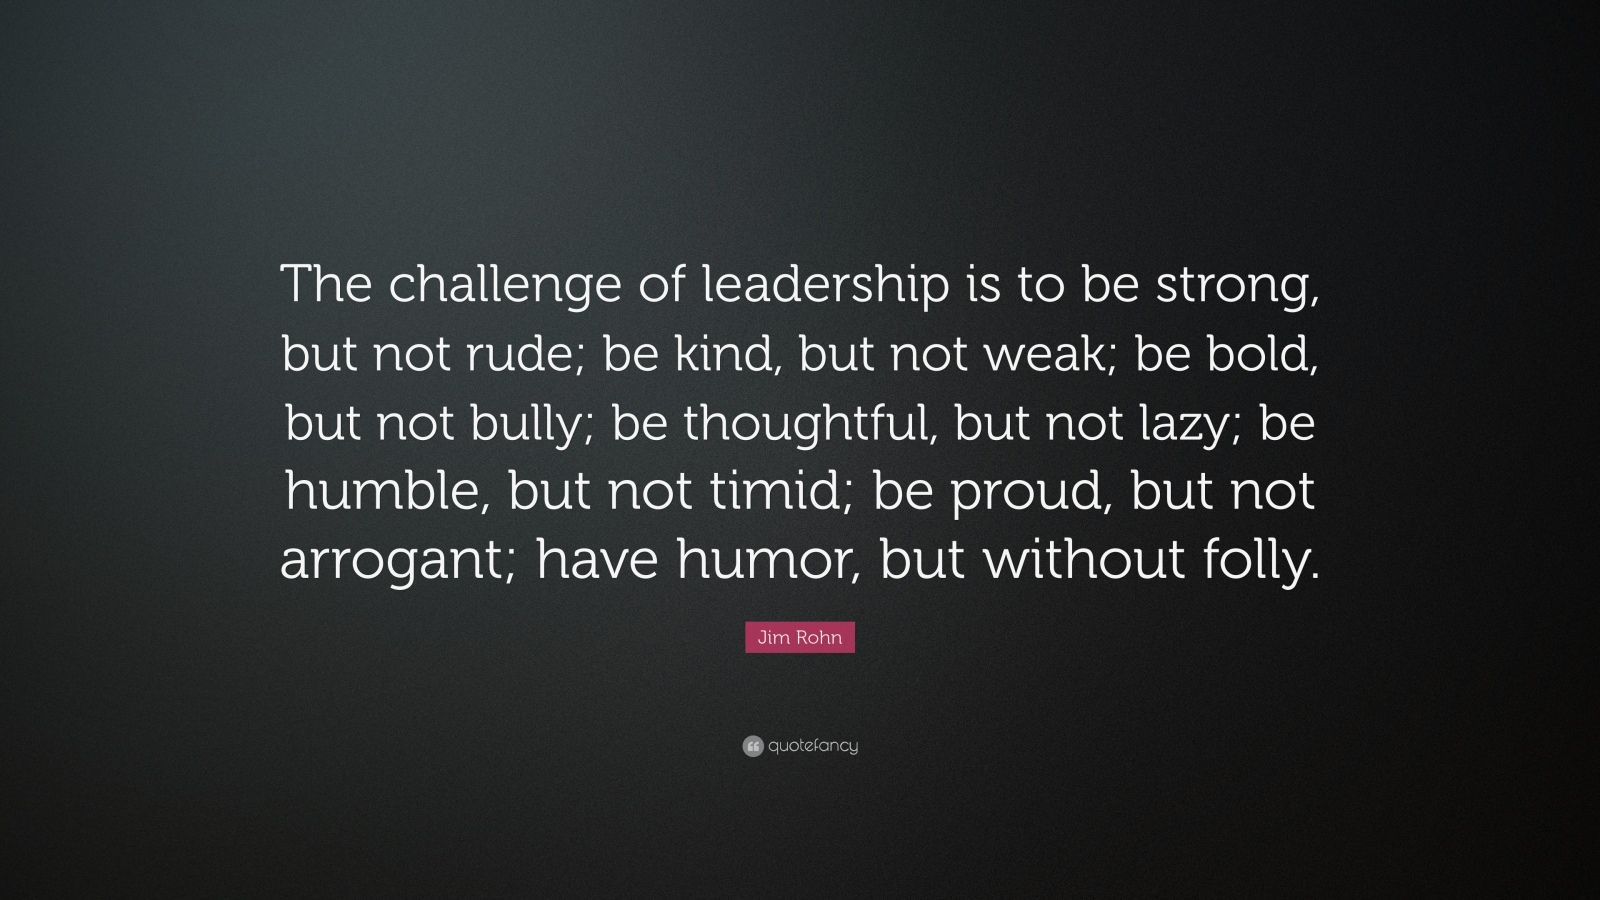 "Jim Rohn Quote: ""The challenge of leadership is to be strong, but not rude; be kind, but not weak; be bold, but not bully; be thoughtful, but not lazy; be humble, but not timid; be proud, but not arrogant; have humor, but without folly."""